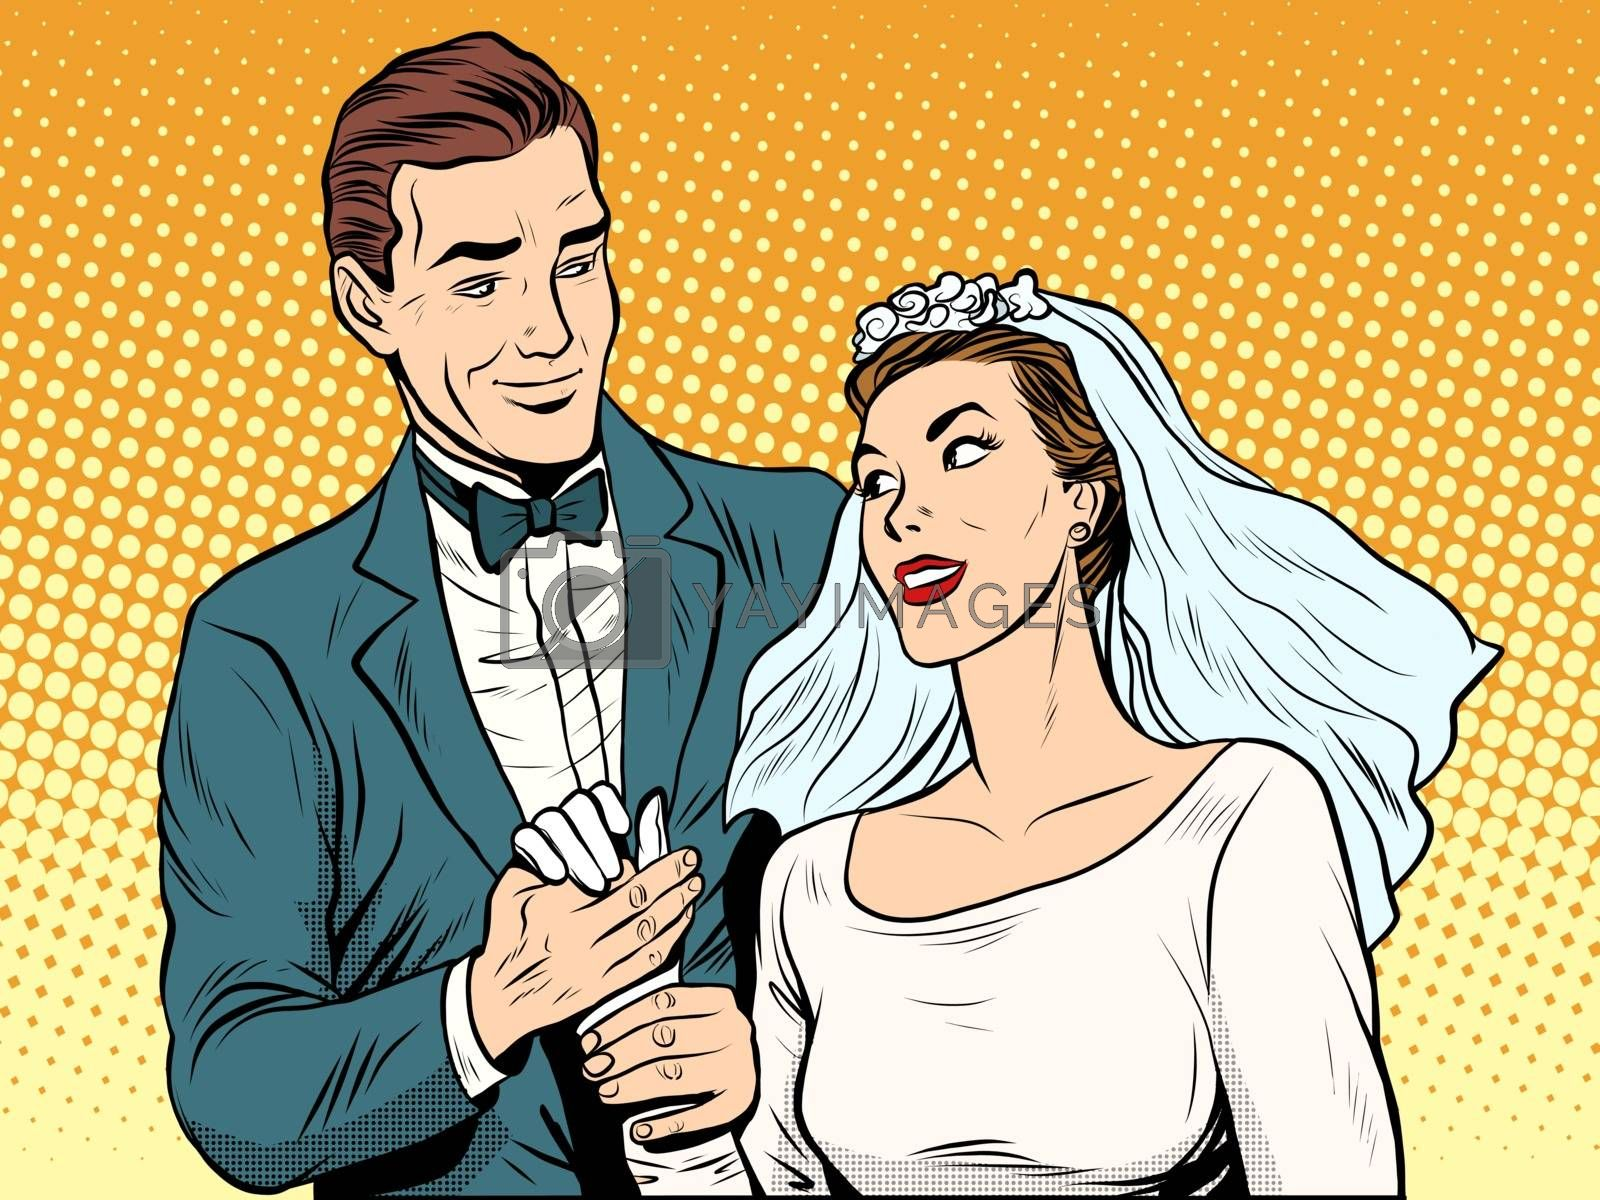 Wedding betrothal engagement groom bride love pop art retro style. Couple man and woman in wedding attire. Romance and feelings